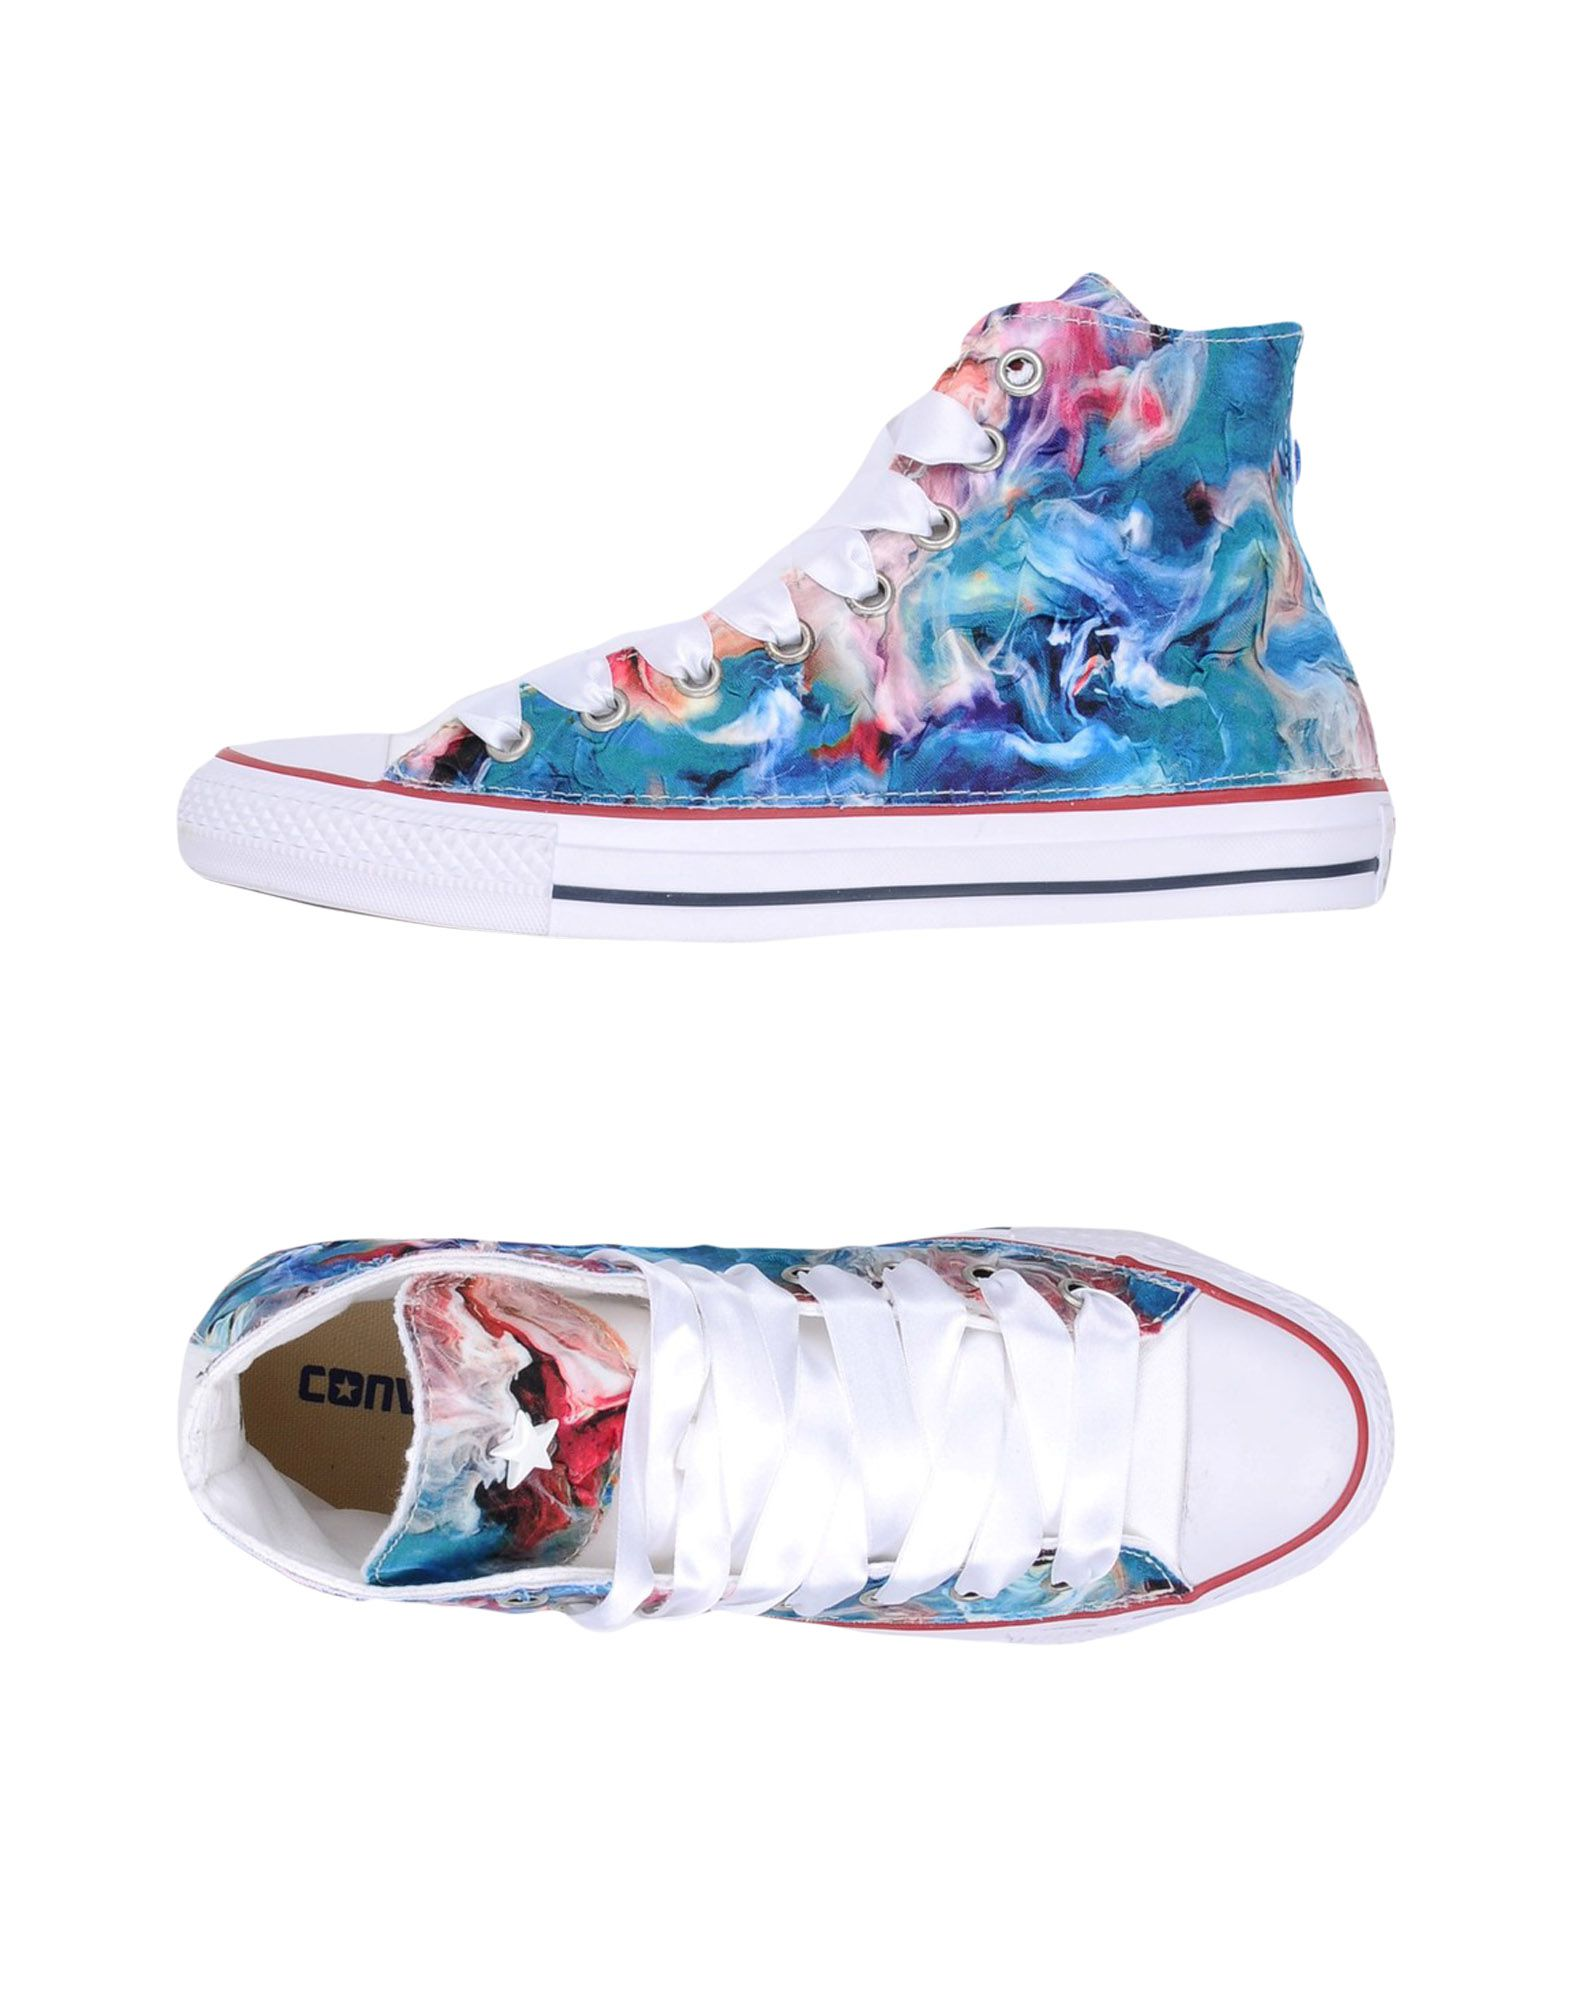 Sneakers Converse Limited Edition Ctas Hi Canvas/Textile Ltd - Donna - Acquista online su